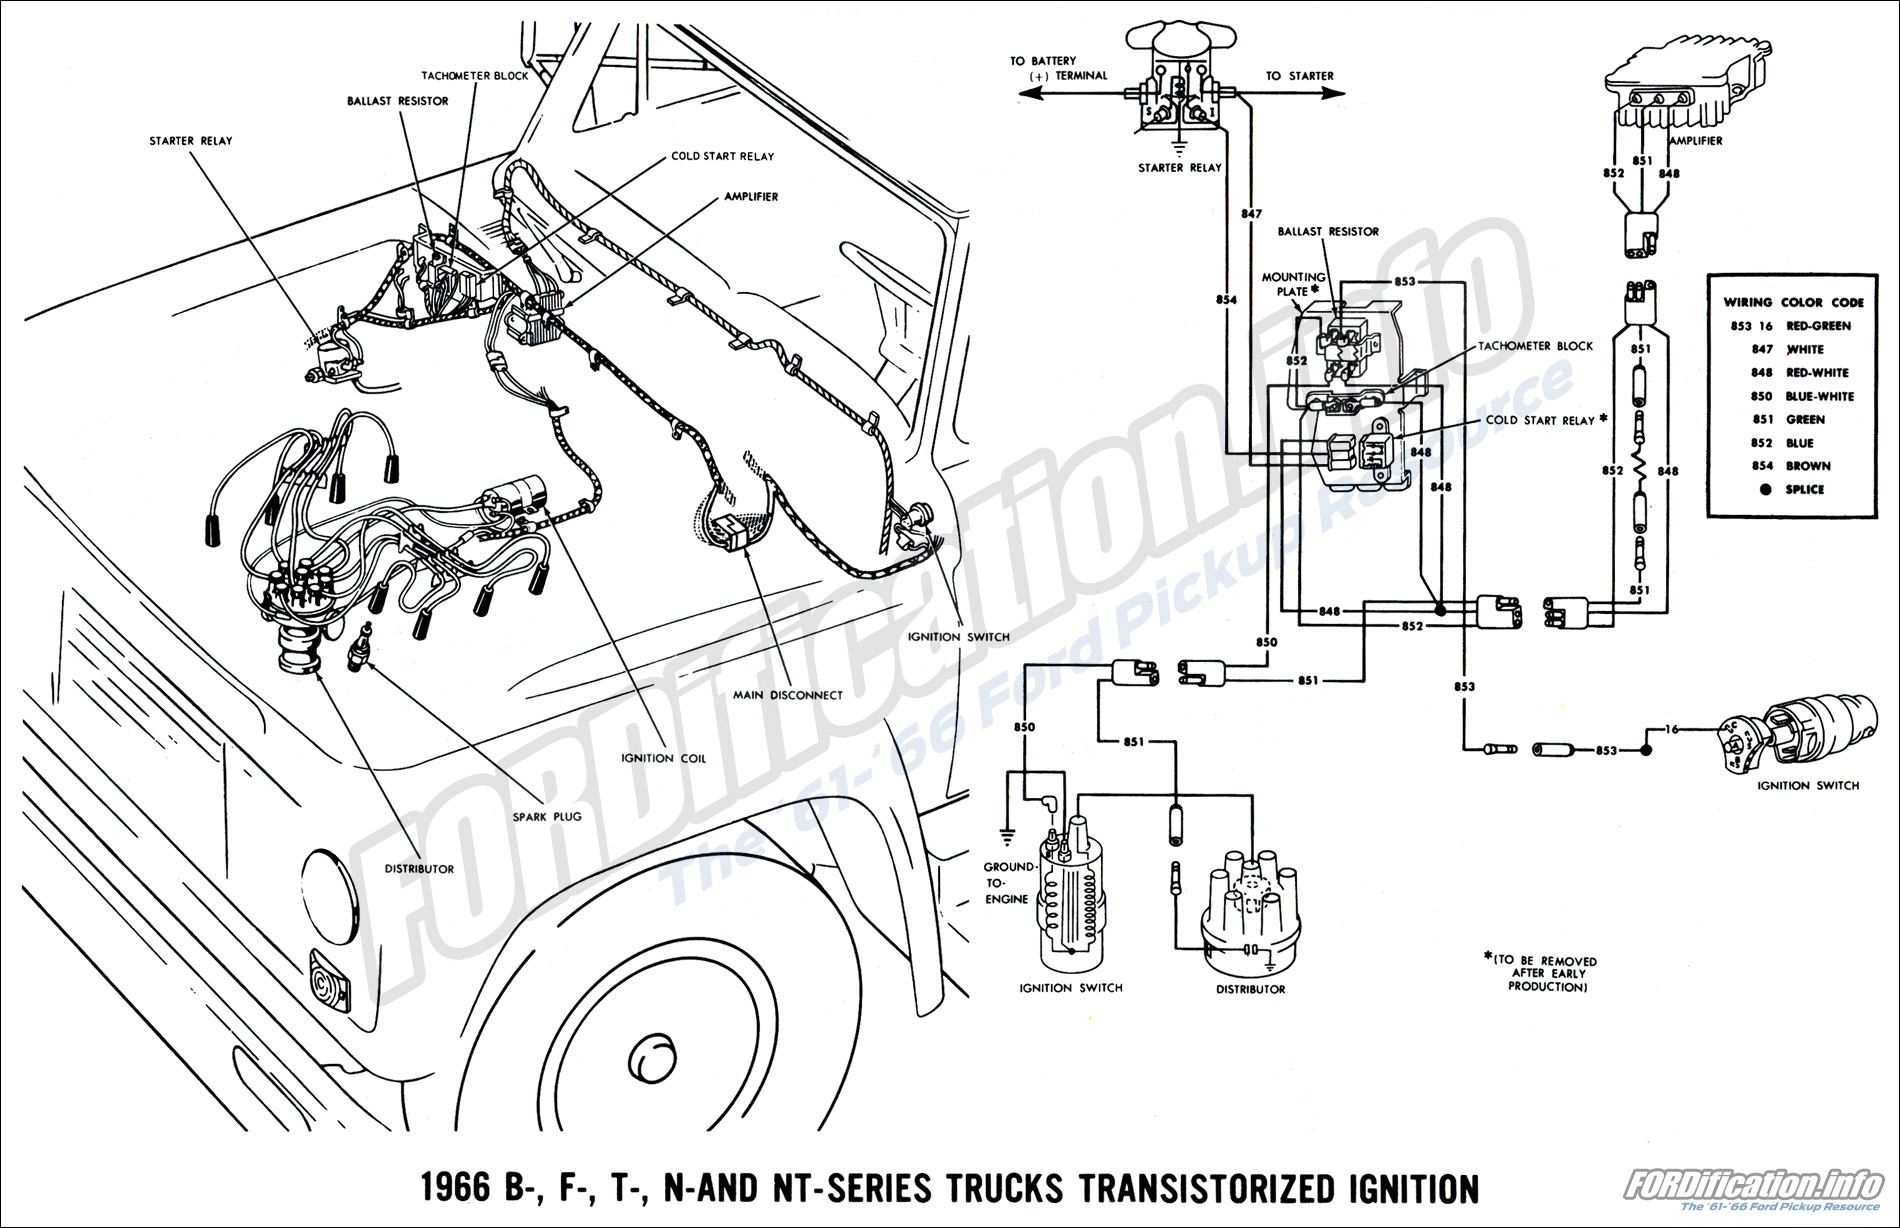 1974 ford f100 wiring harness diagram  ford  wiring diagram images